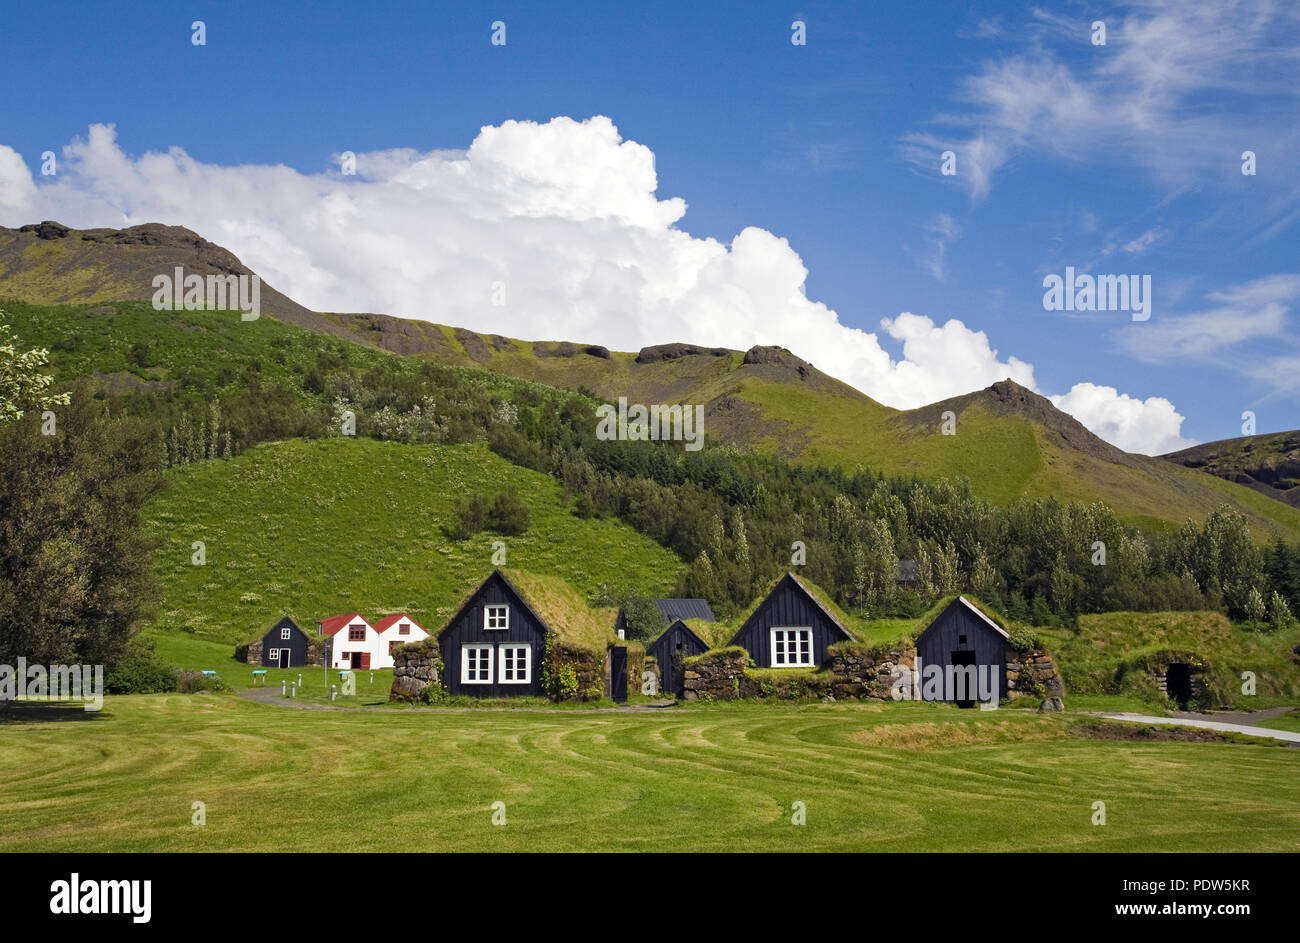 A collection of traditional and authentic Icelandic turf houses and cowsheds, dating from the early 1800s, at the Skogar Folk Museum in the village of - Stock Image